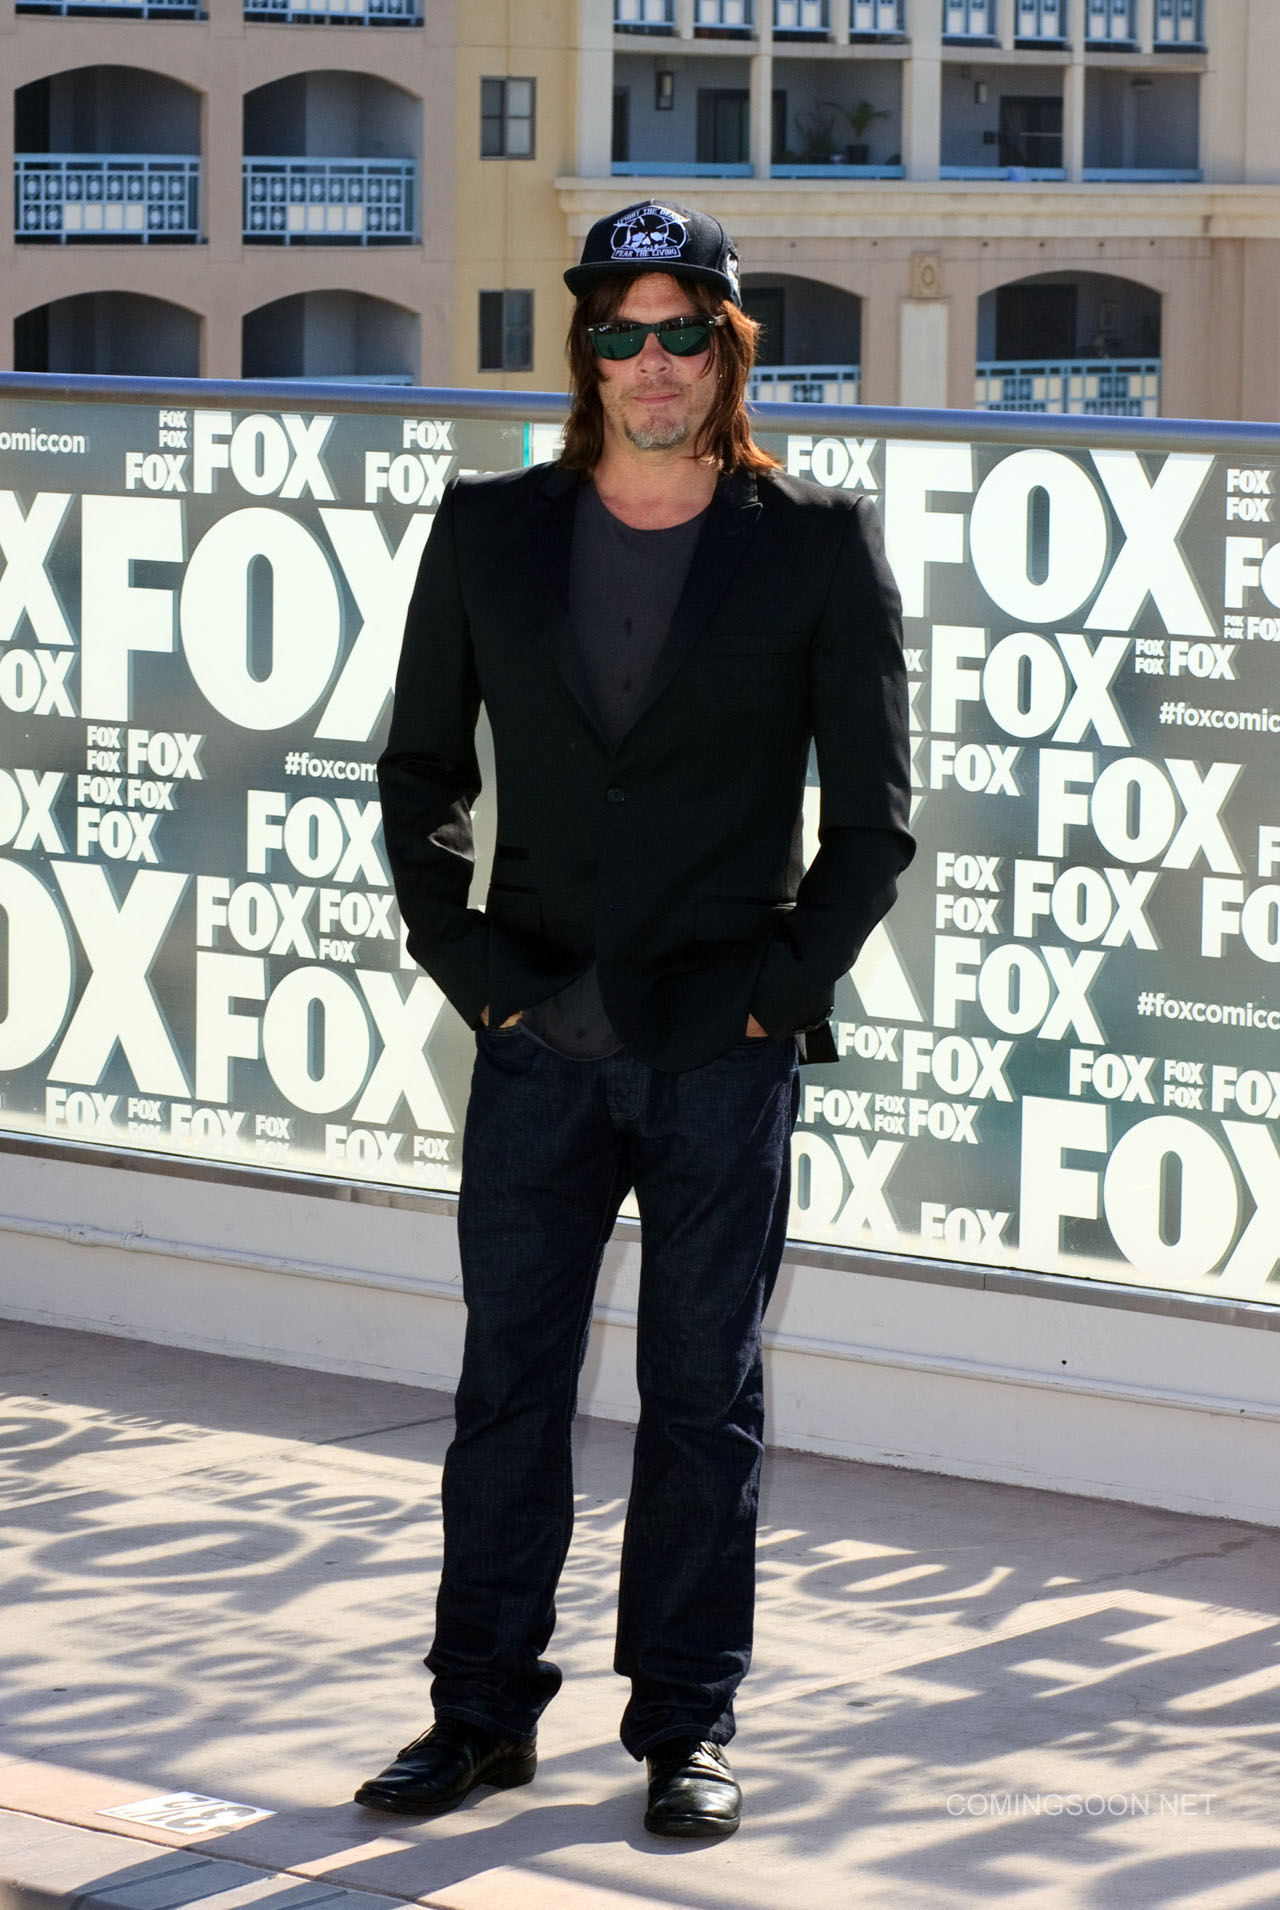 Fox Comic Con breakfast with the cast of Walking Dead and Outcast Featuring: Norman Reedus Where: San Diego, California, United States When: 22 Jul 2016 Credit: Tony Forte/WENN